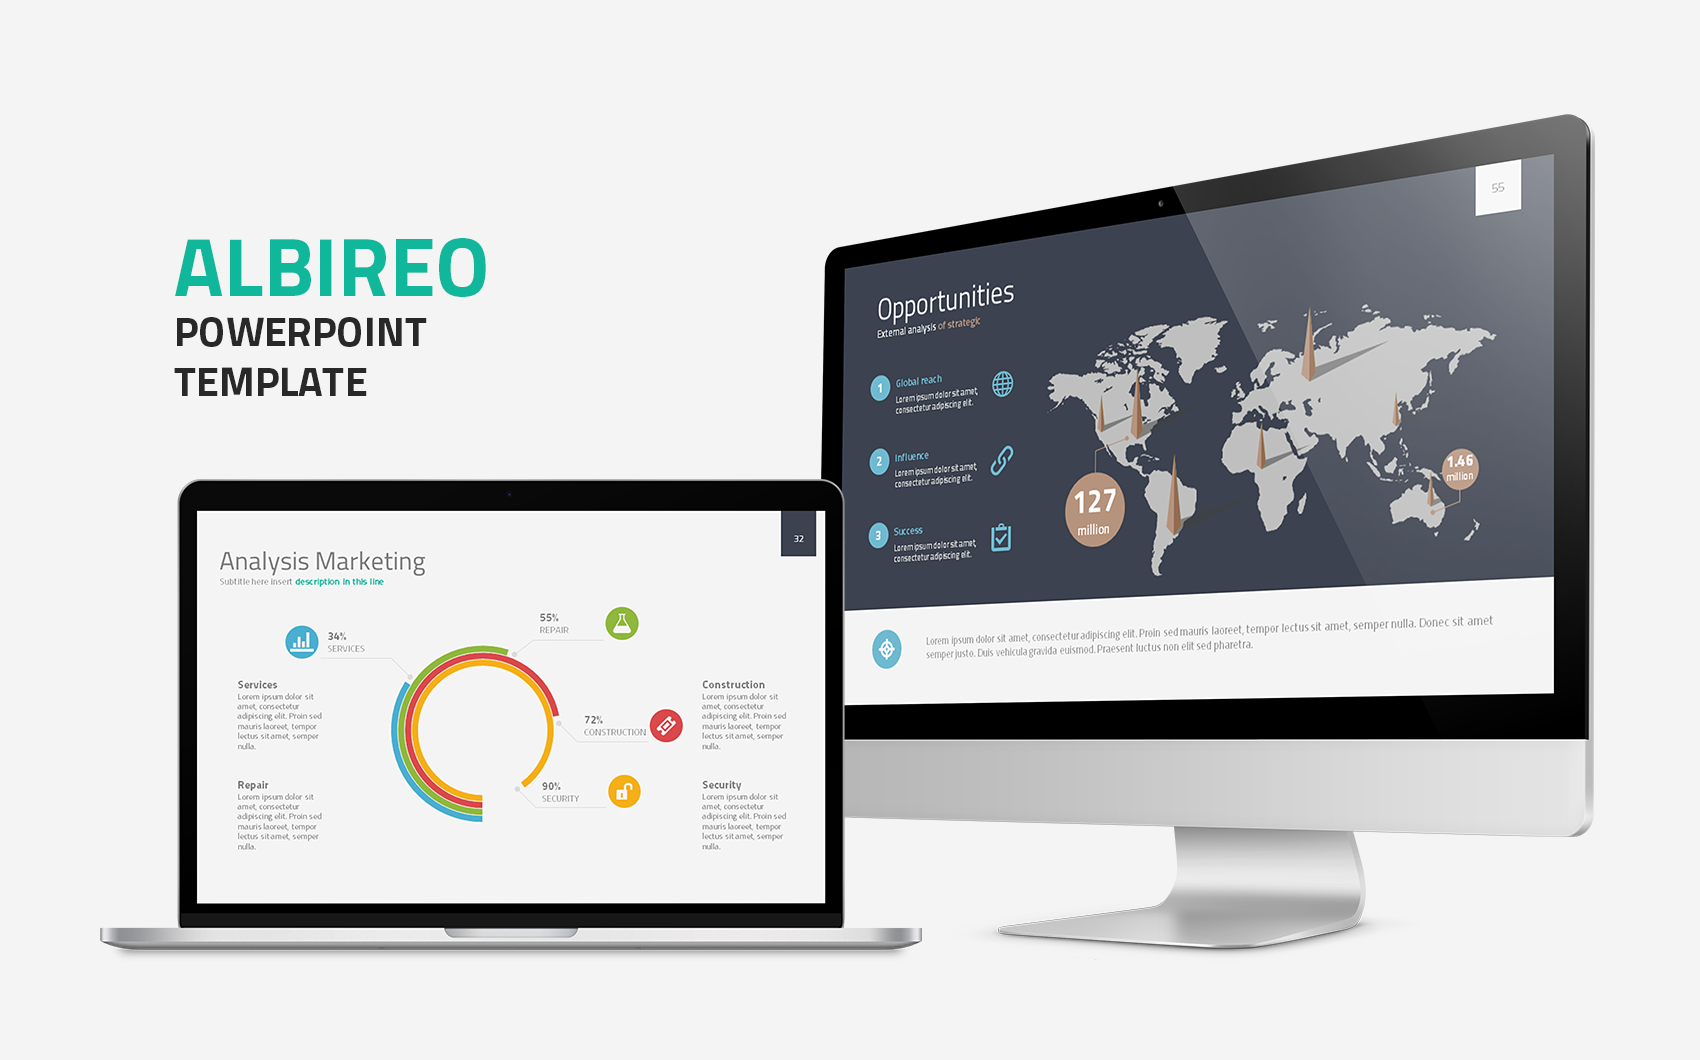 Albireo Powerpoint Template PowerPoint Template